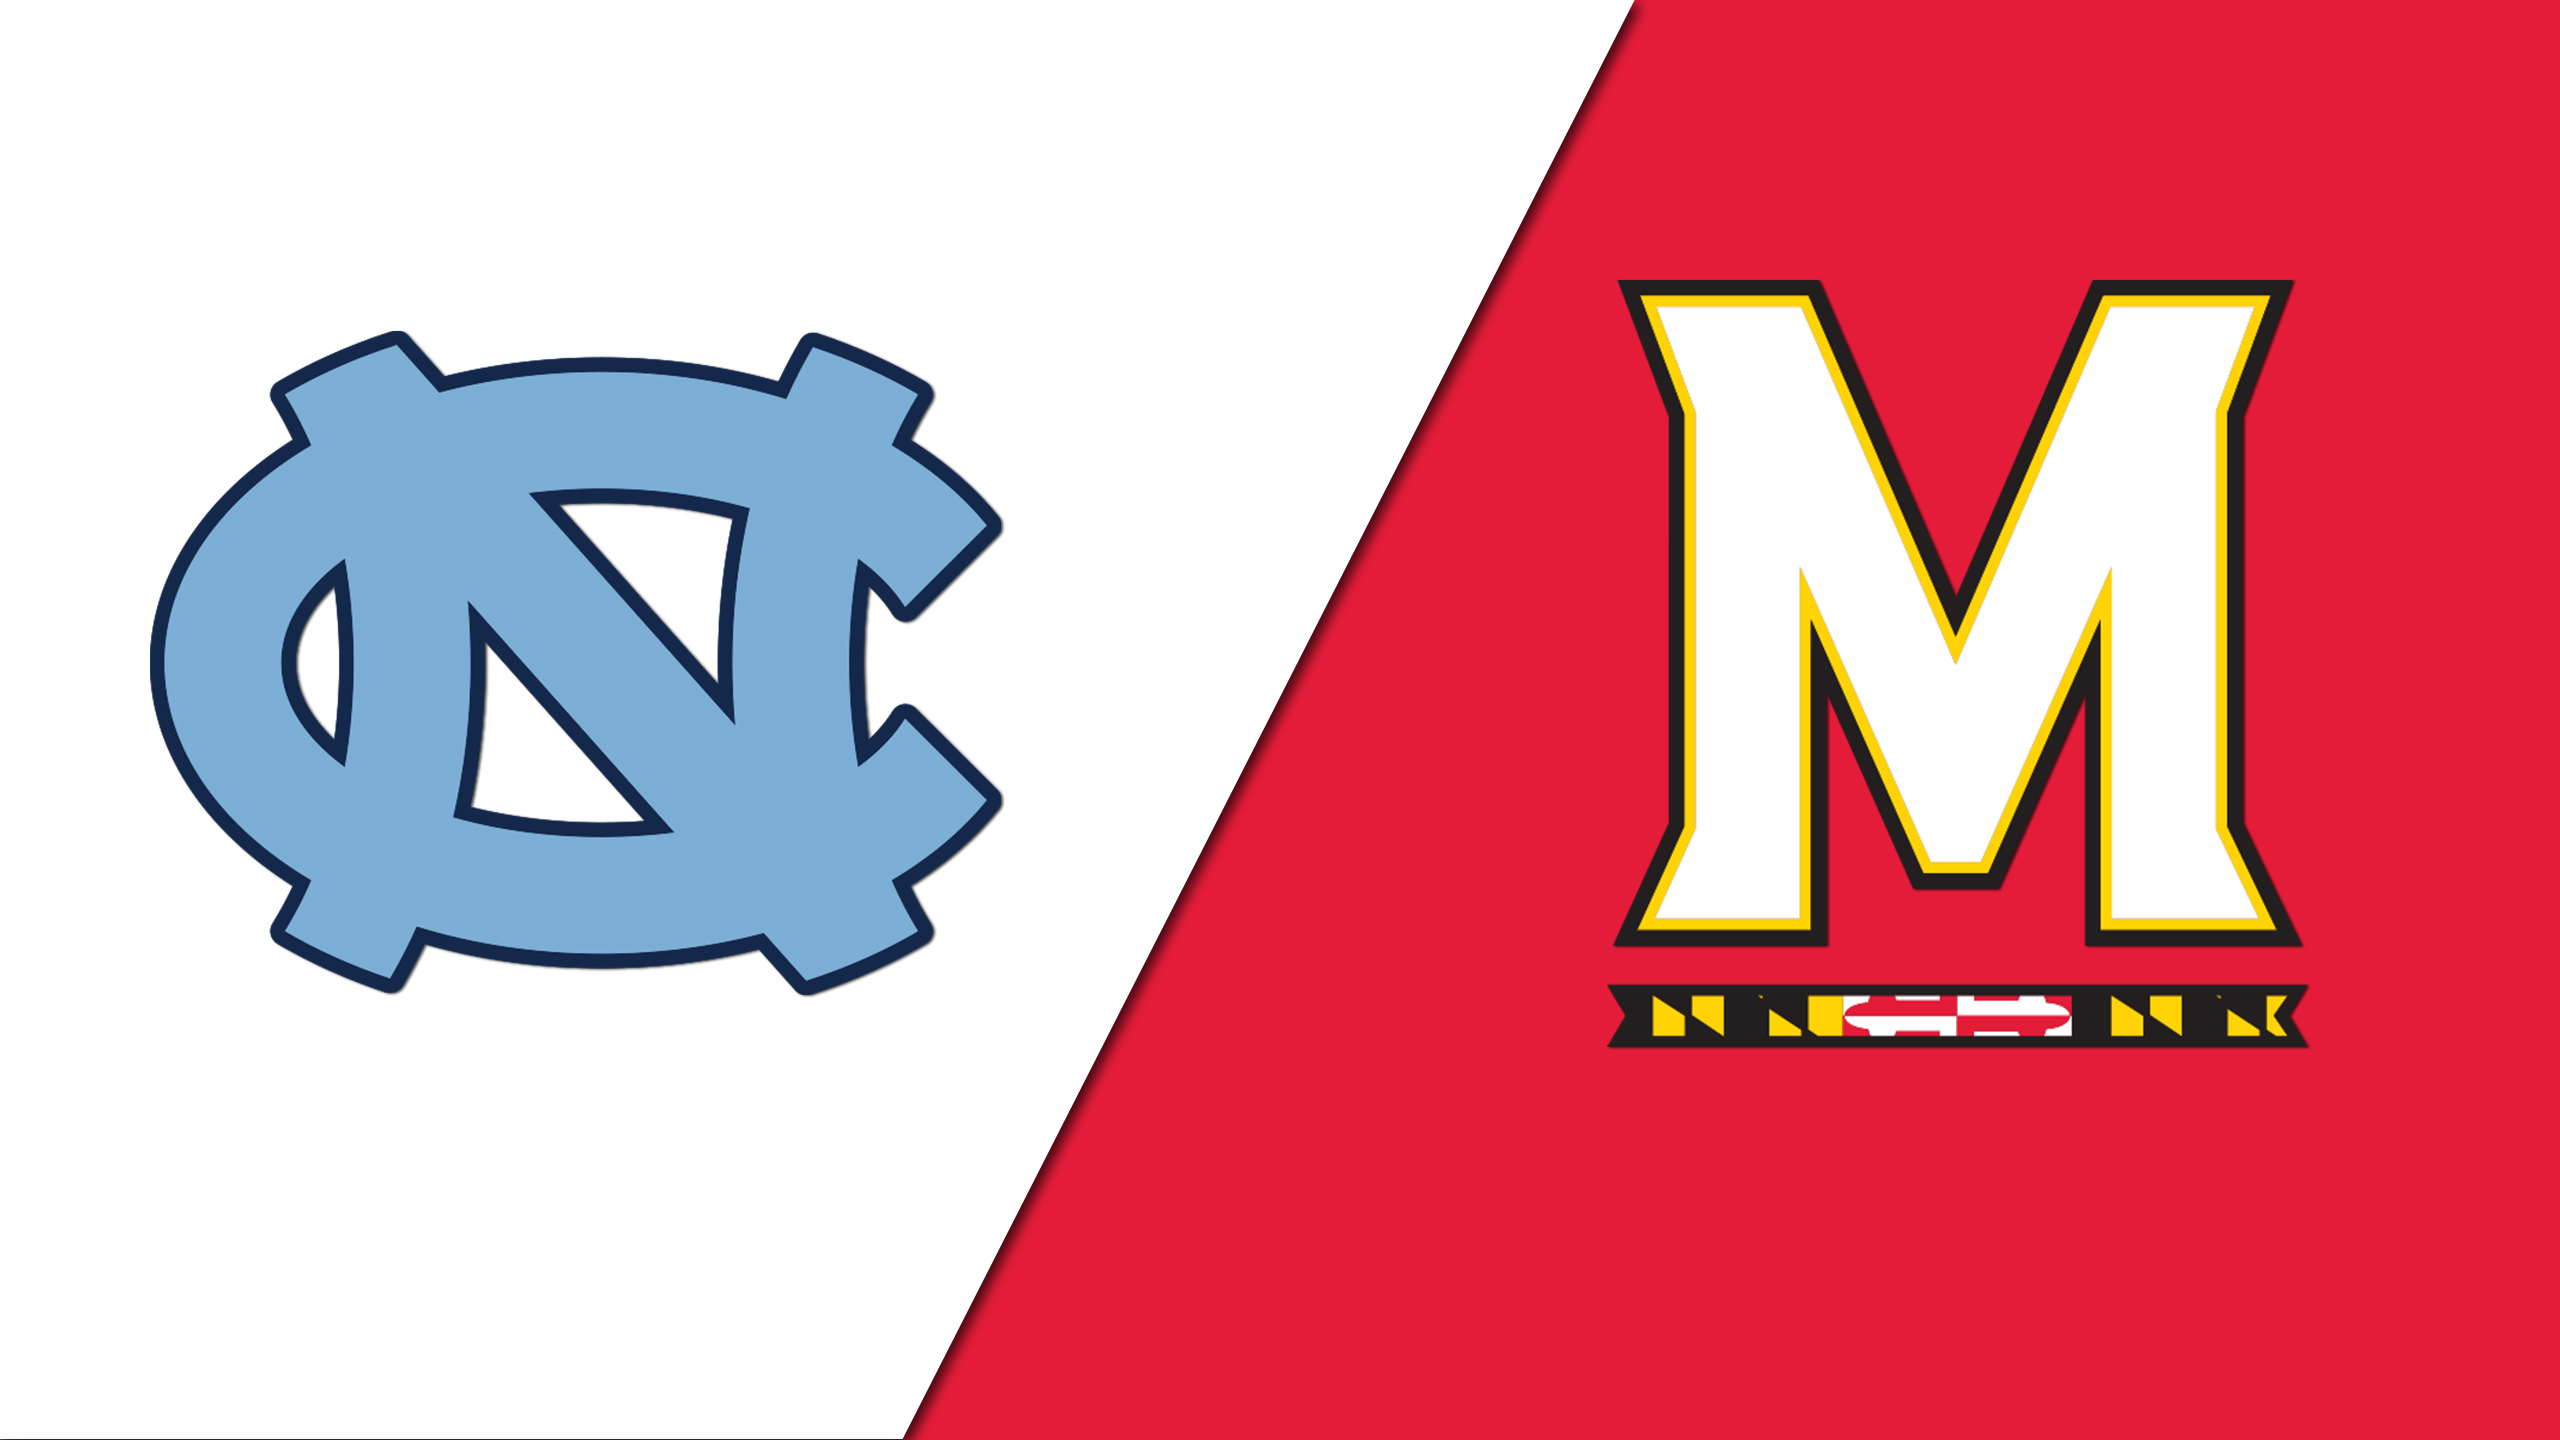 #19 North Carolina vs. #4 Maryland (M Lacrosse)